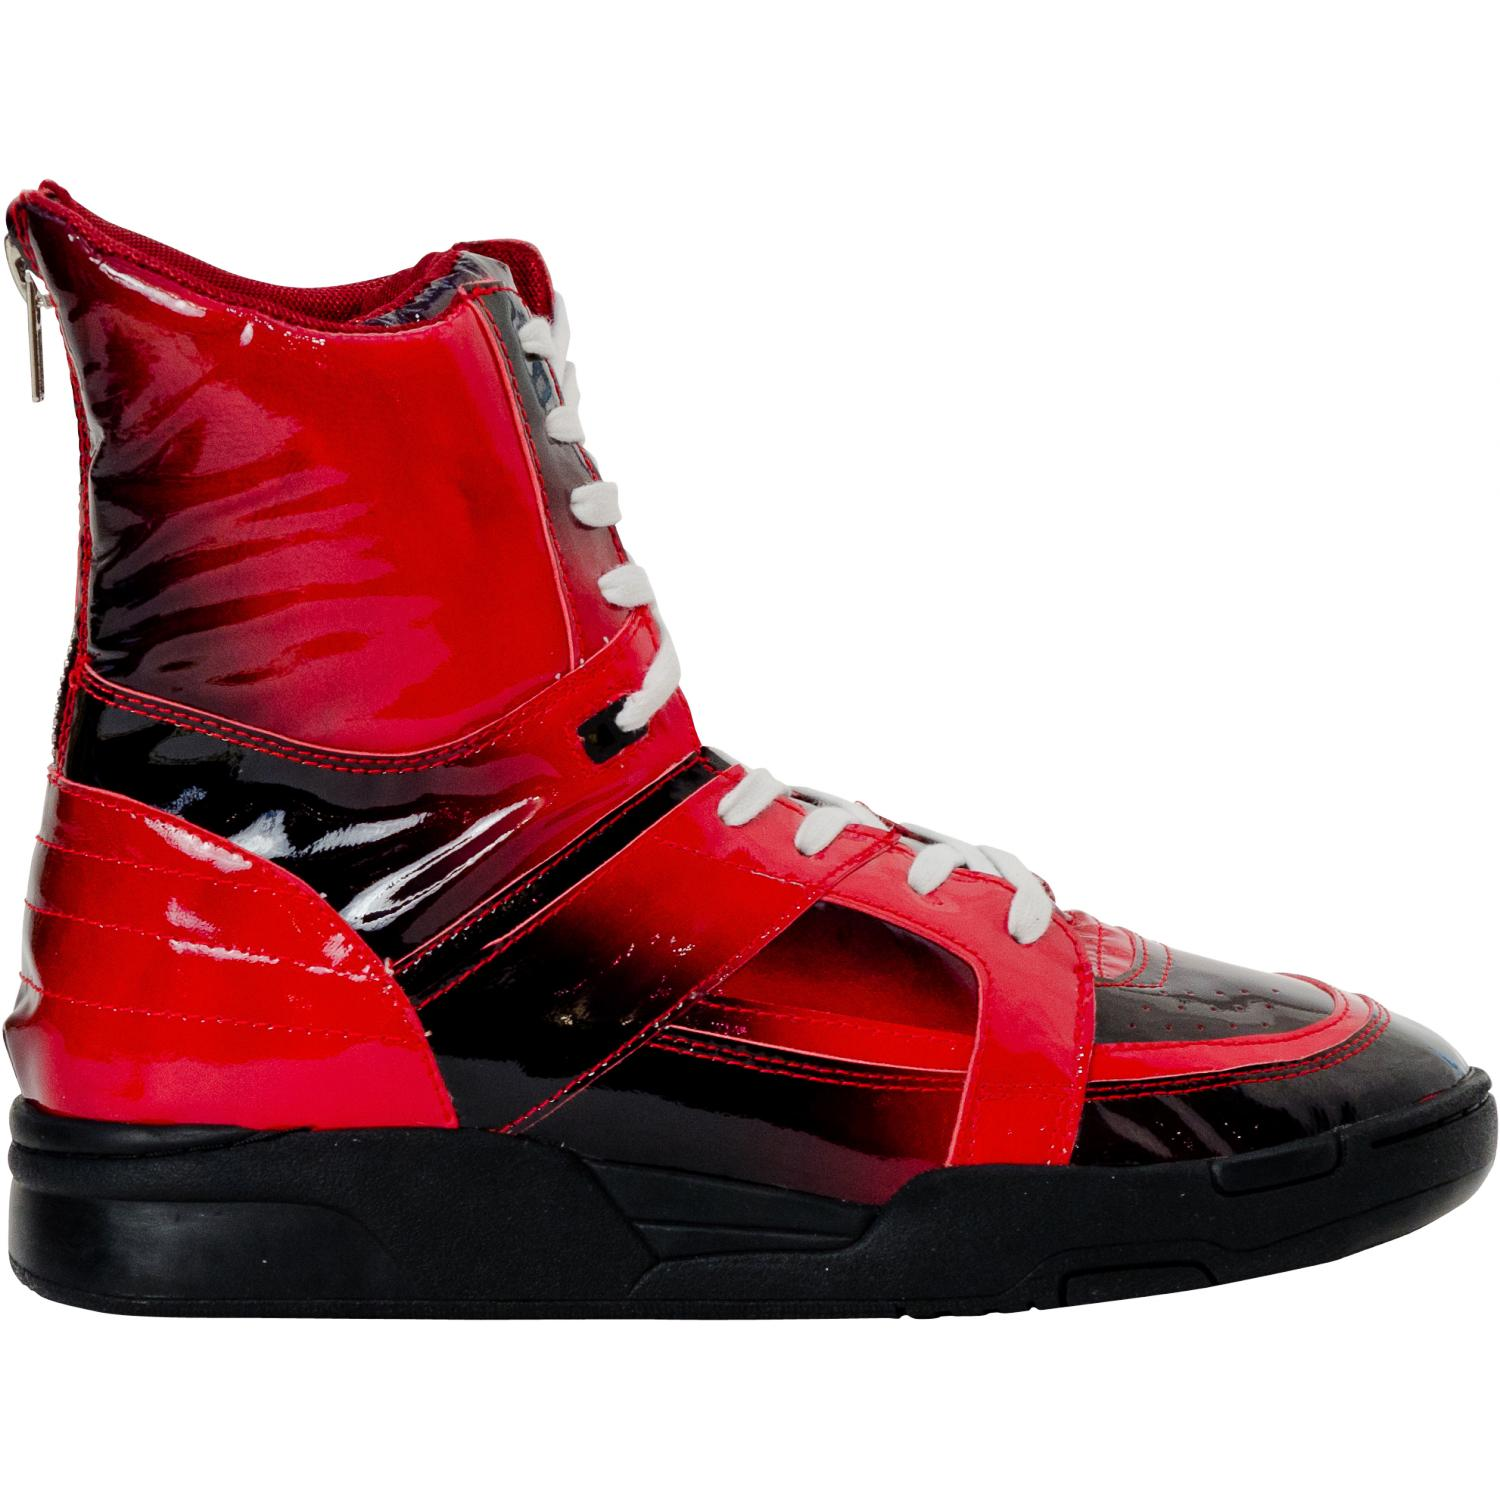 Rockstar Crimson Red Patent Leather High Top Sneakers